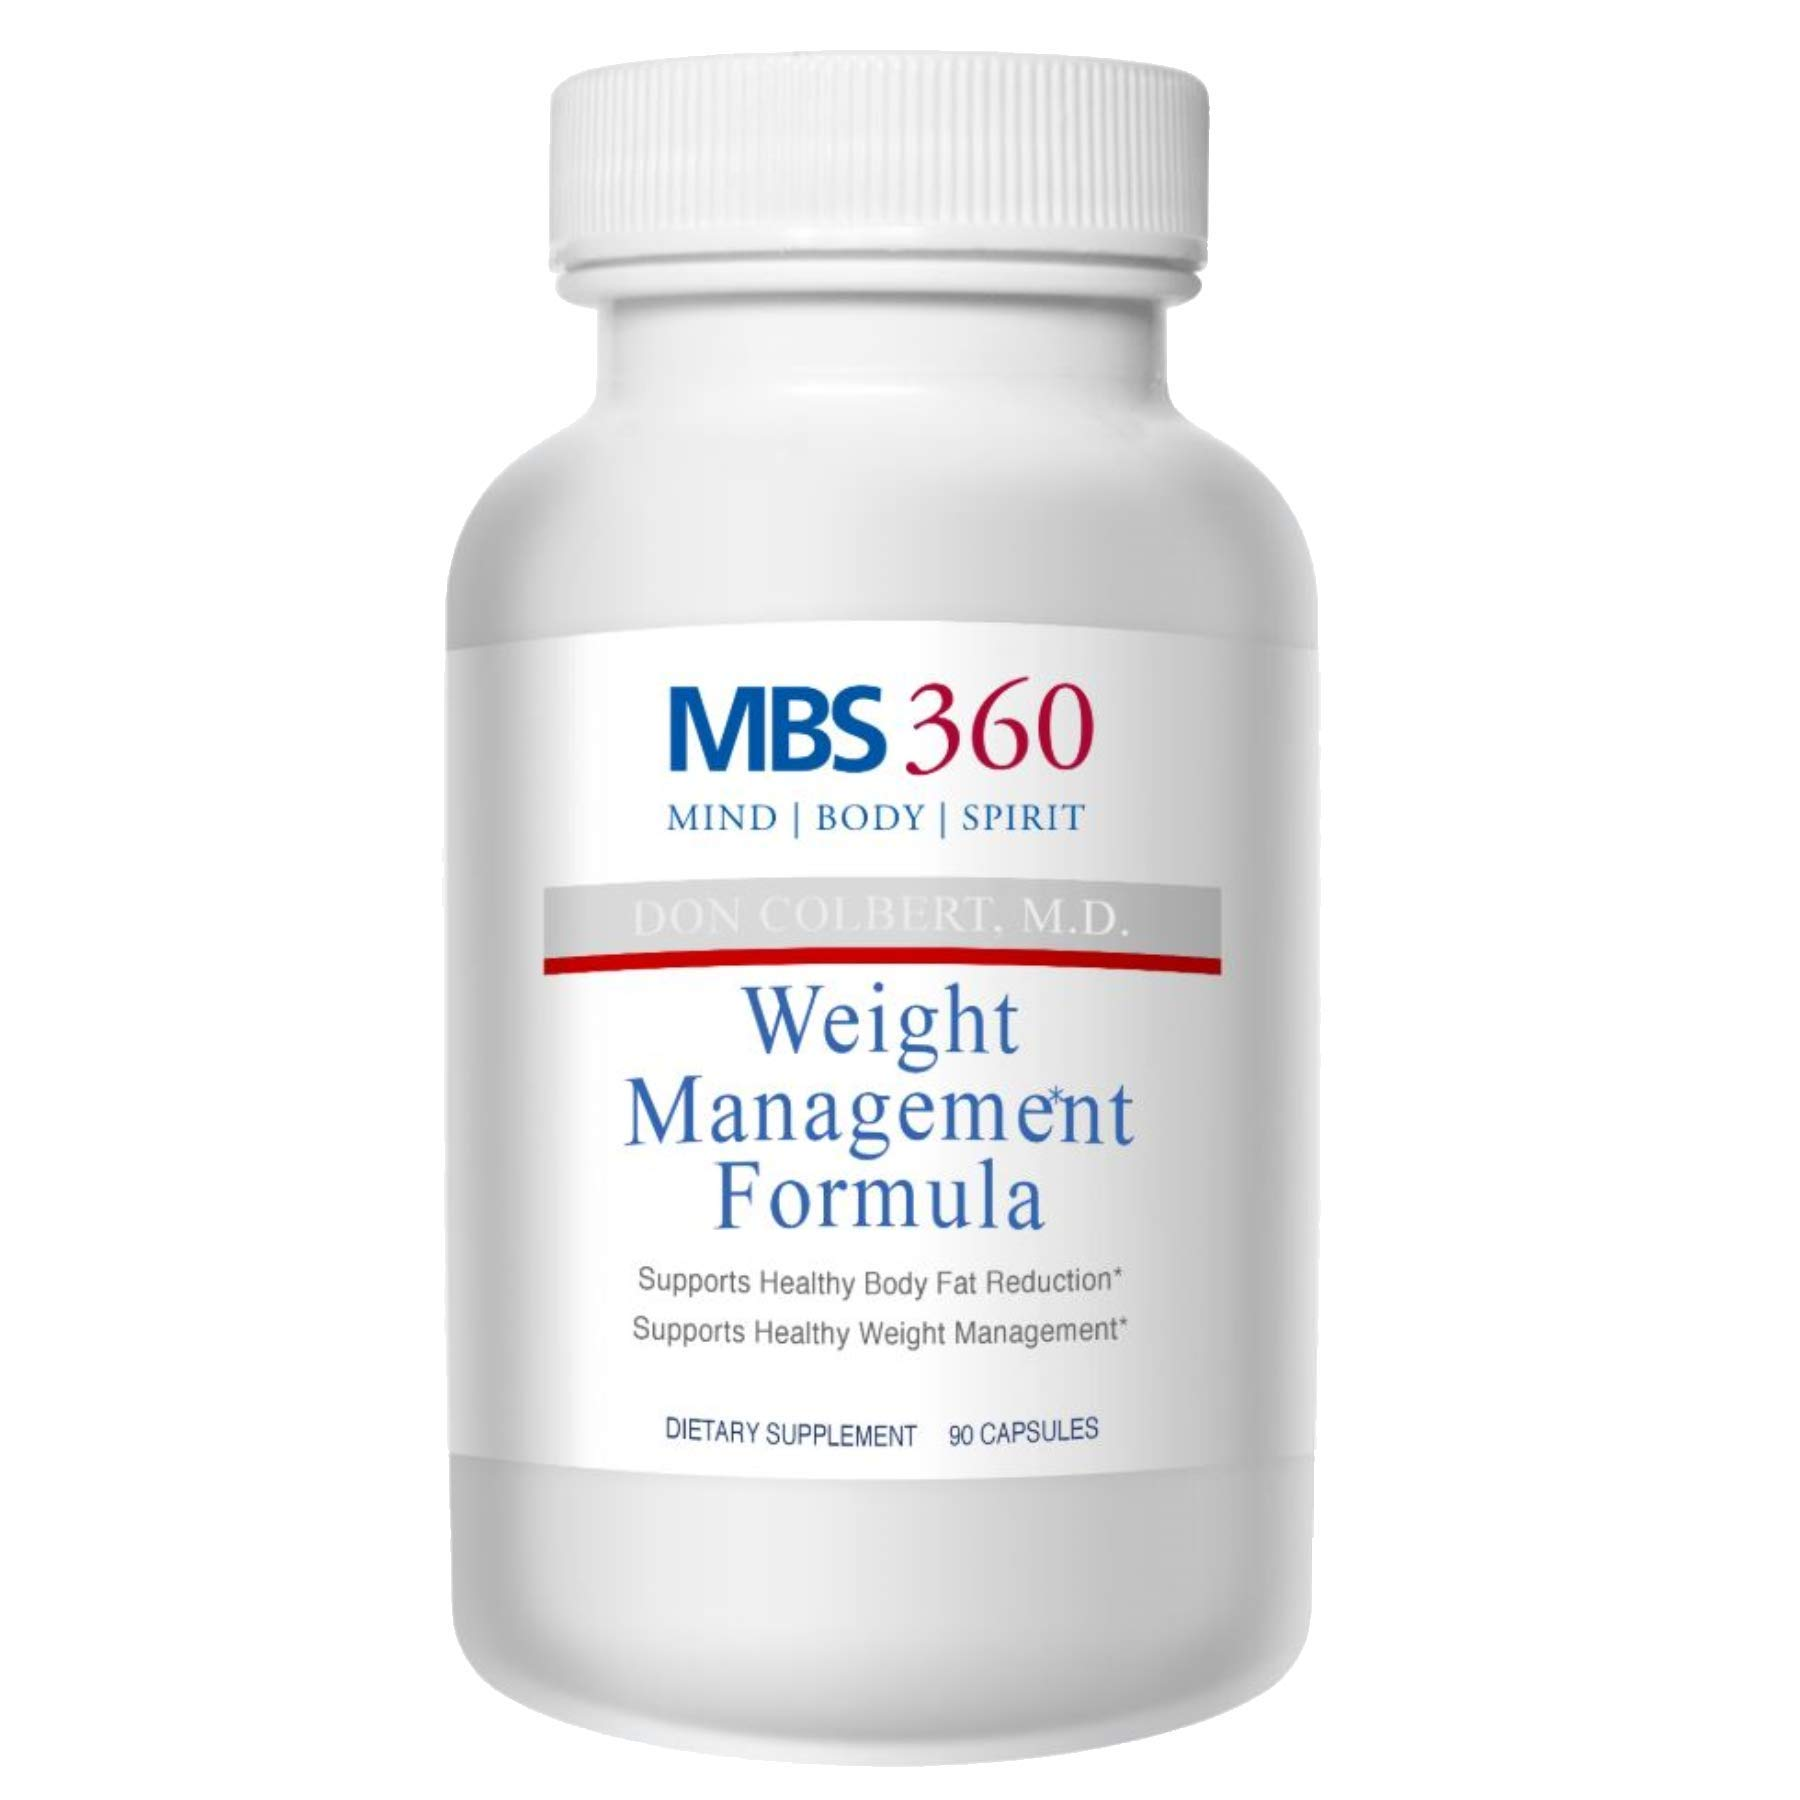 MBS360 Weight Management Formula Scientifically Proven Ingredients- Green Tea Extract + Irvingia Seed Extract ✮ Promotes Body Fat Loss Controls Appetite Boosts Metabolism Leptin Resistance